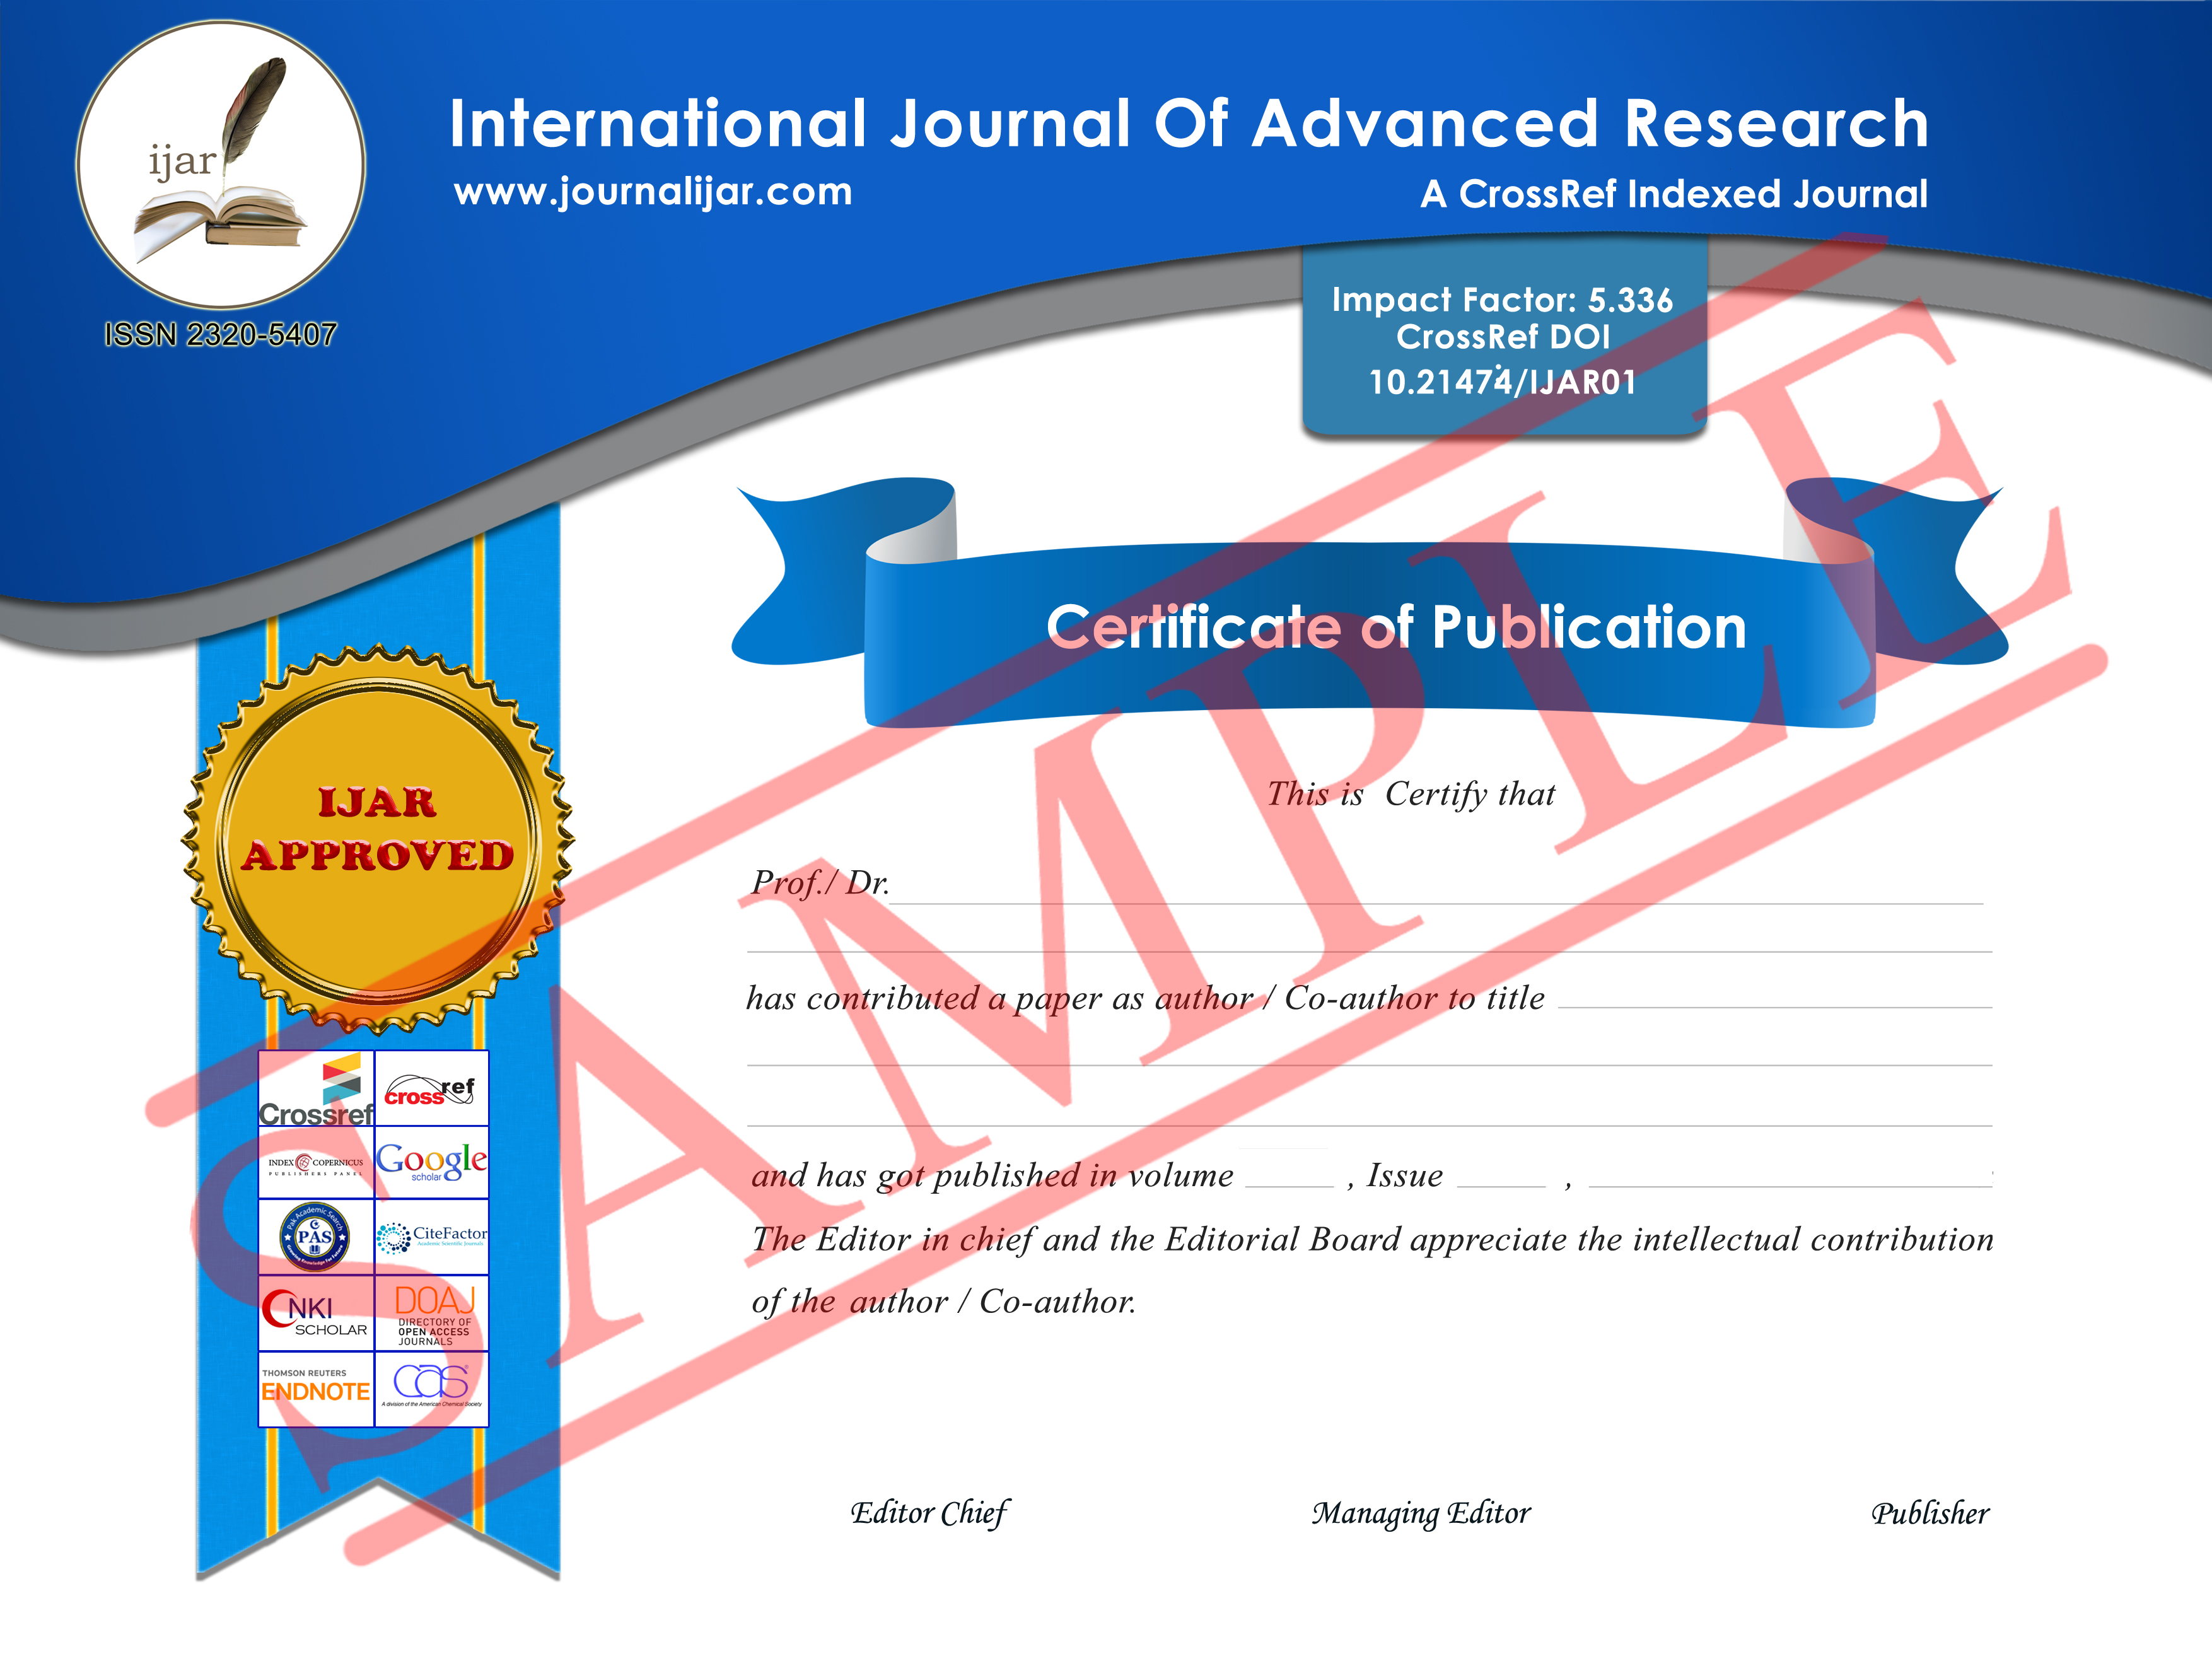 013 Research Paper Free Online Publication Certificate Astounding Full